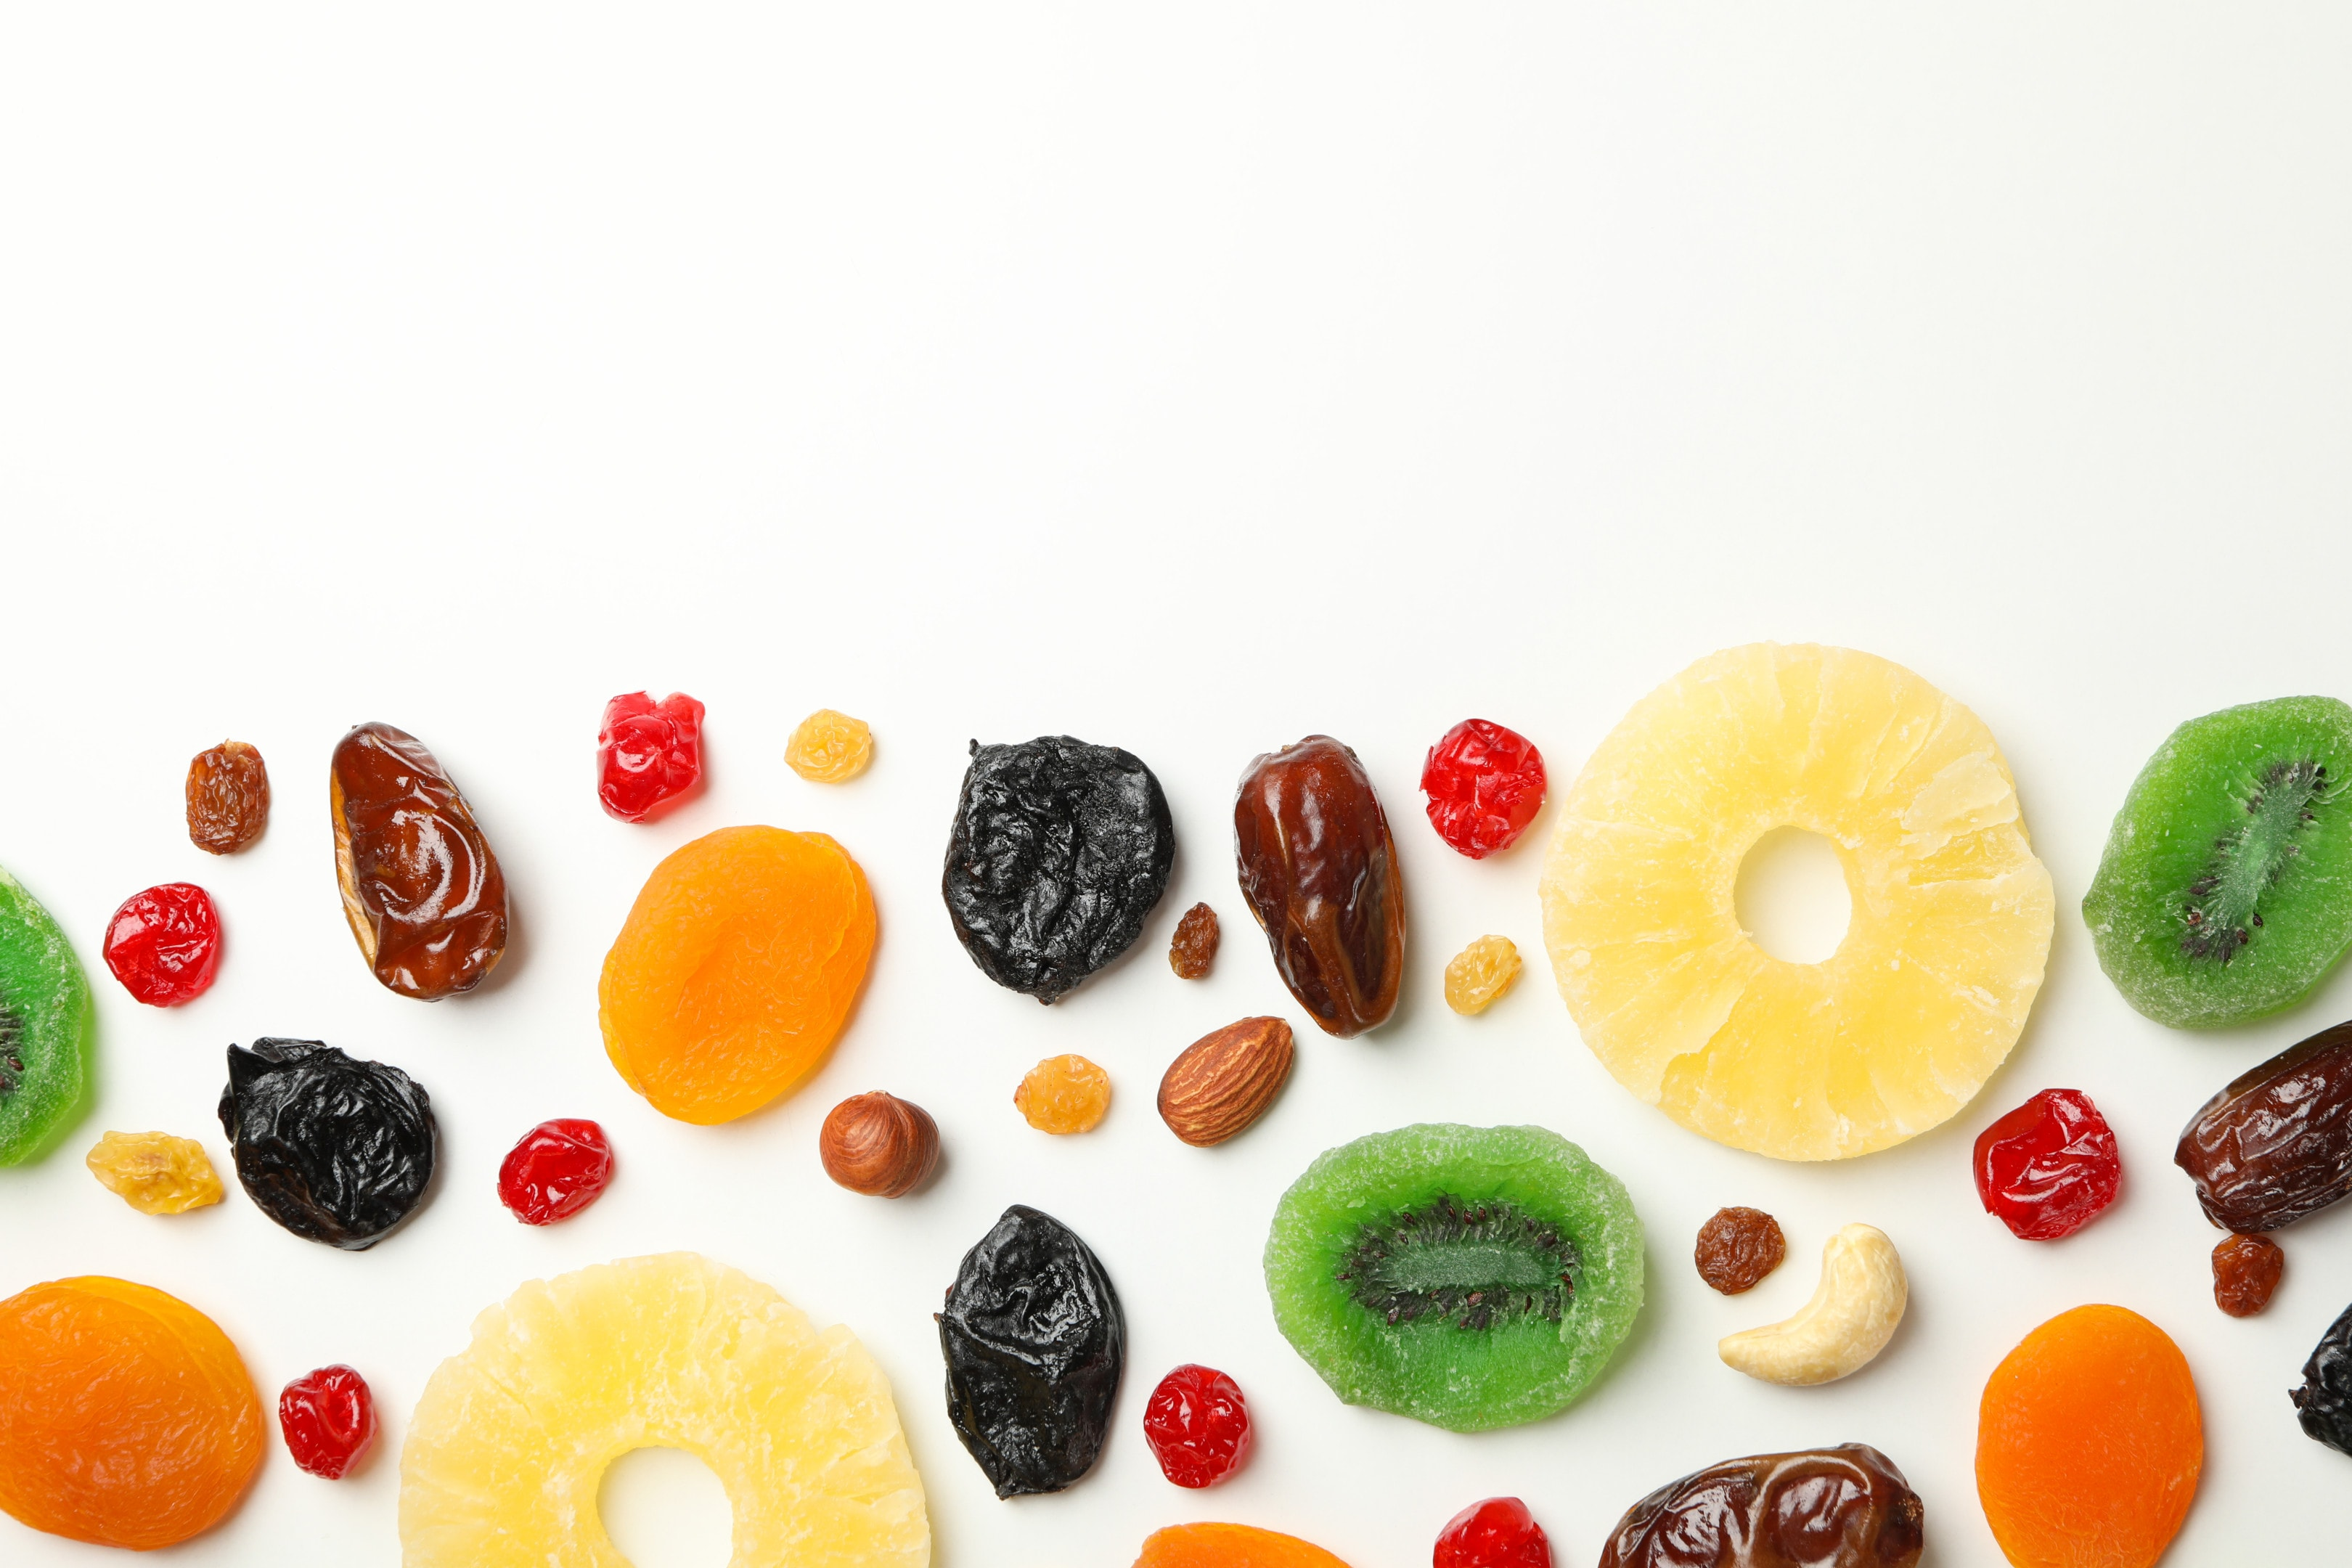 Tasty Dried Fruits on White Table